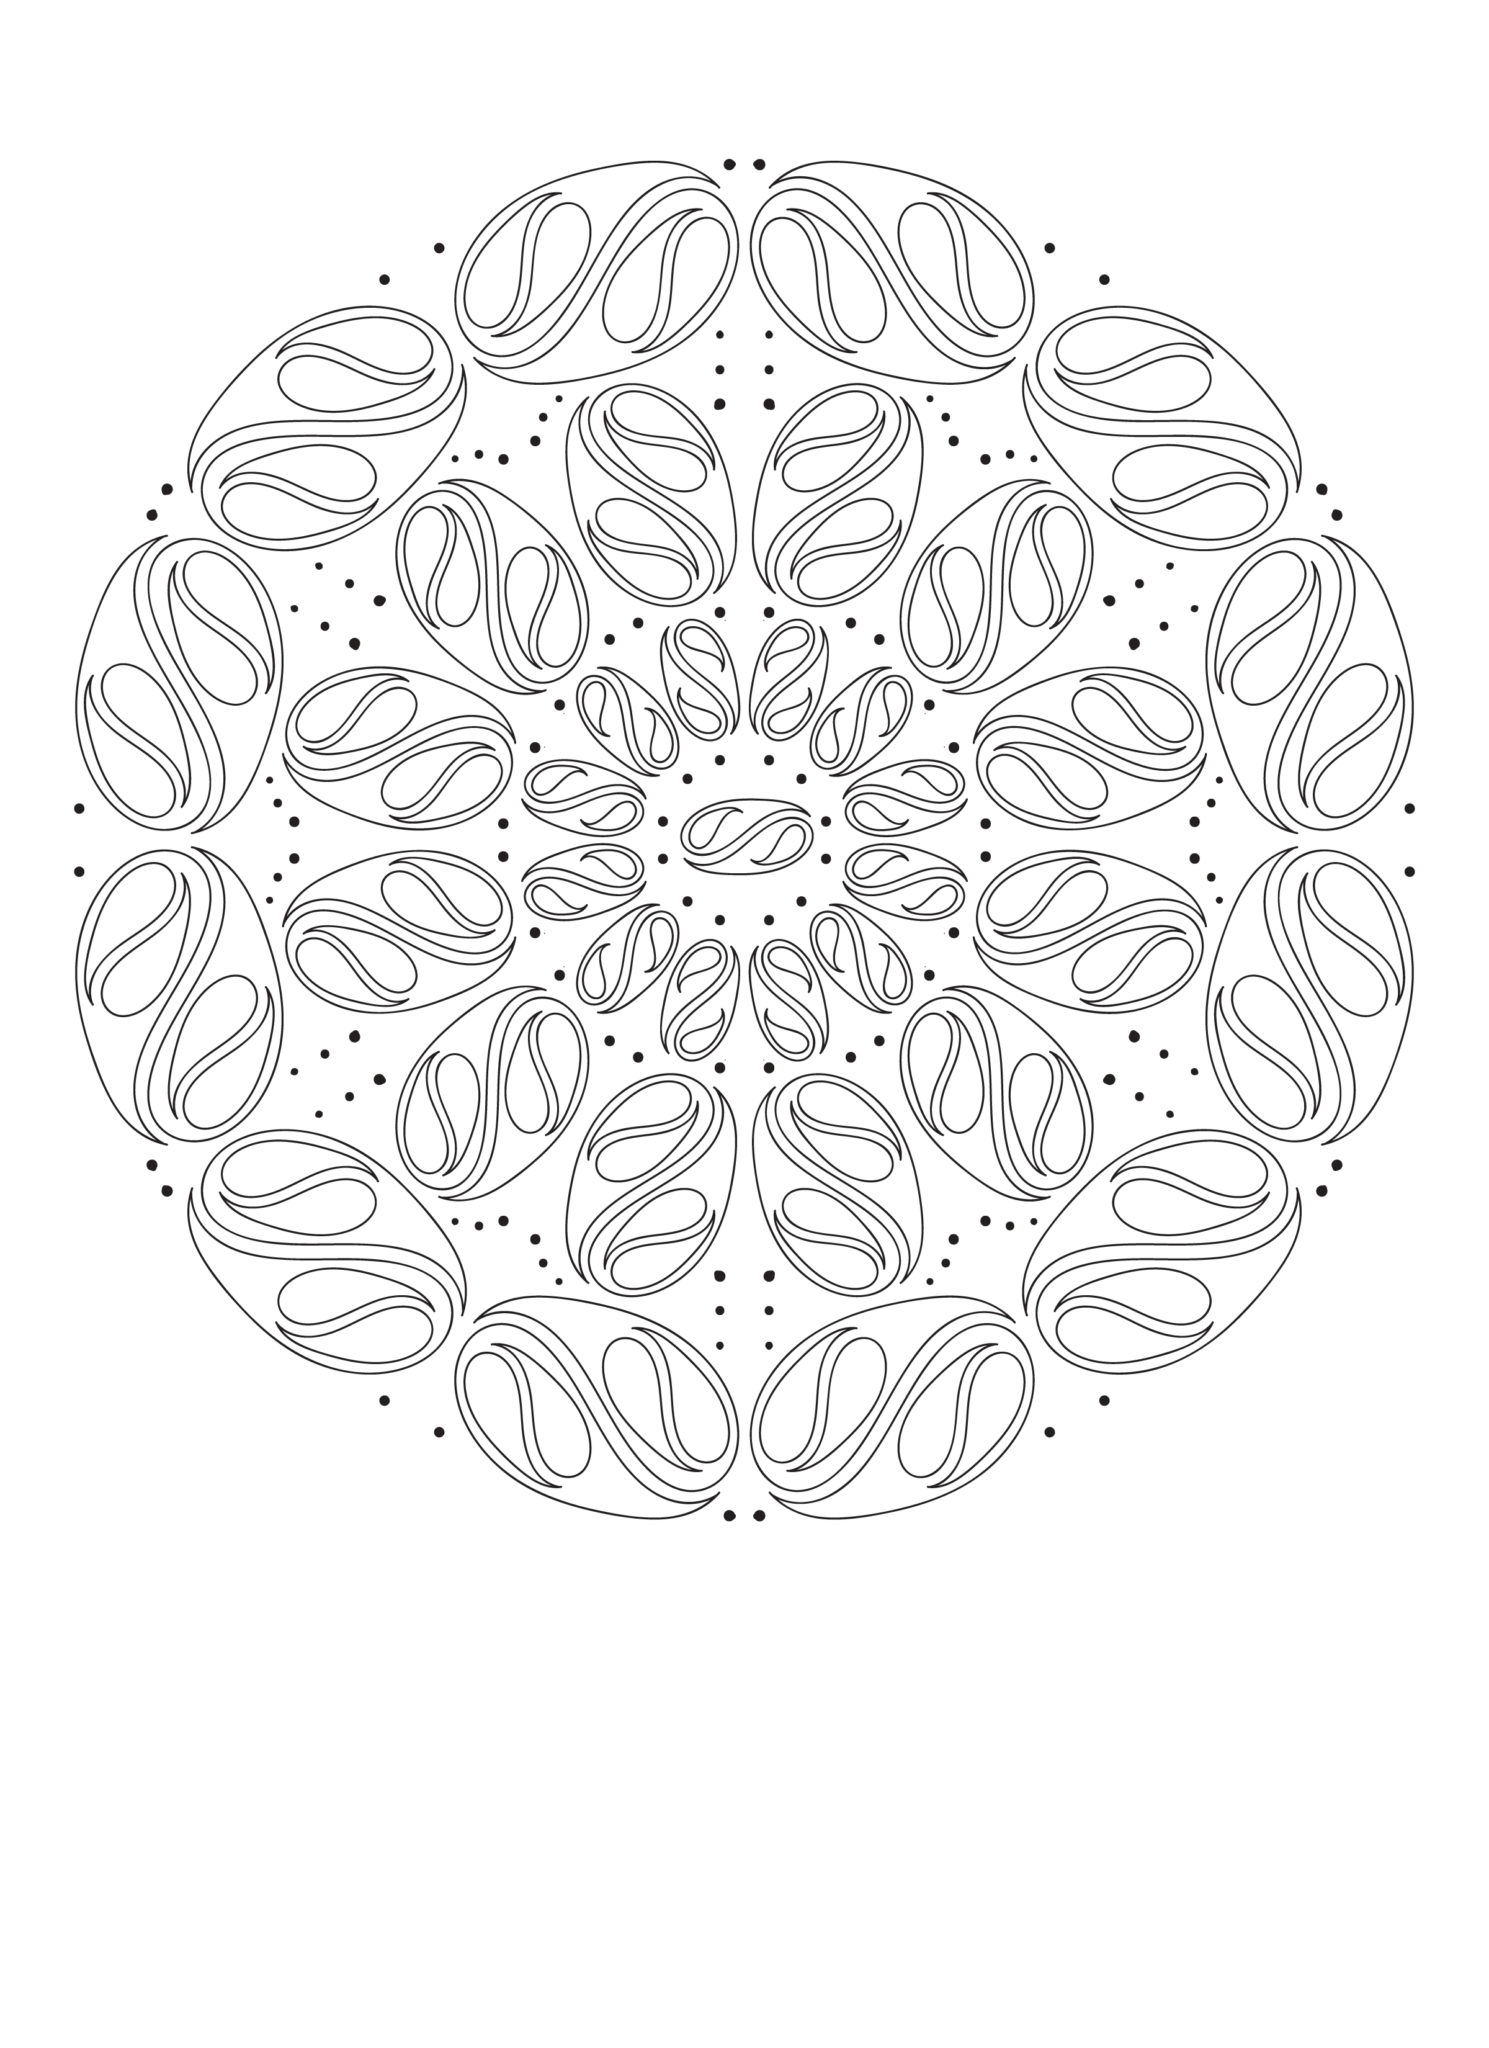 Free Printable  Crazy Yin and Yang Pisces Mandala Coloring Page